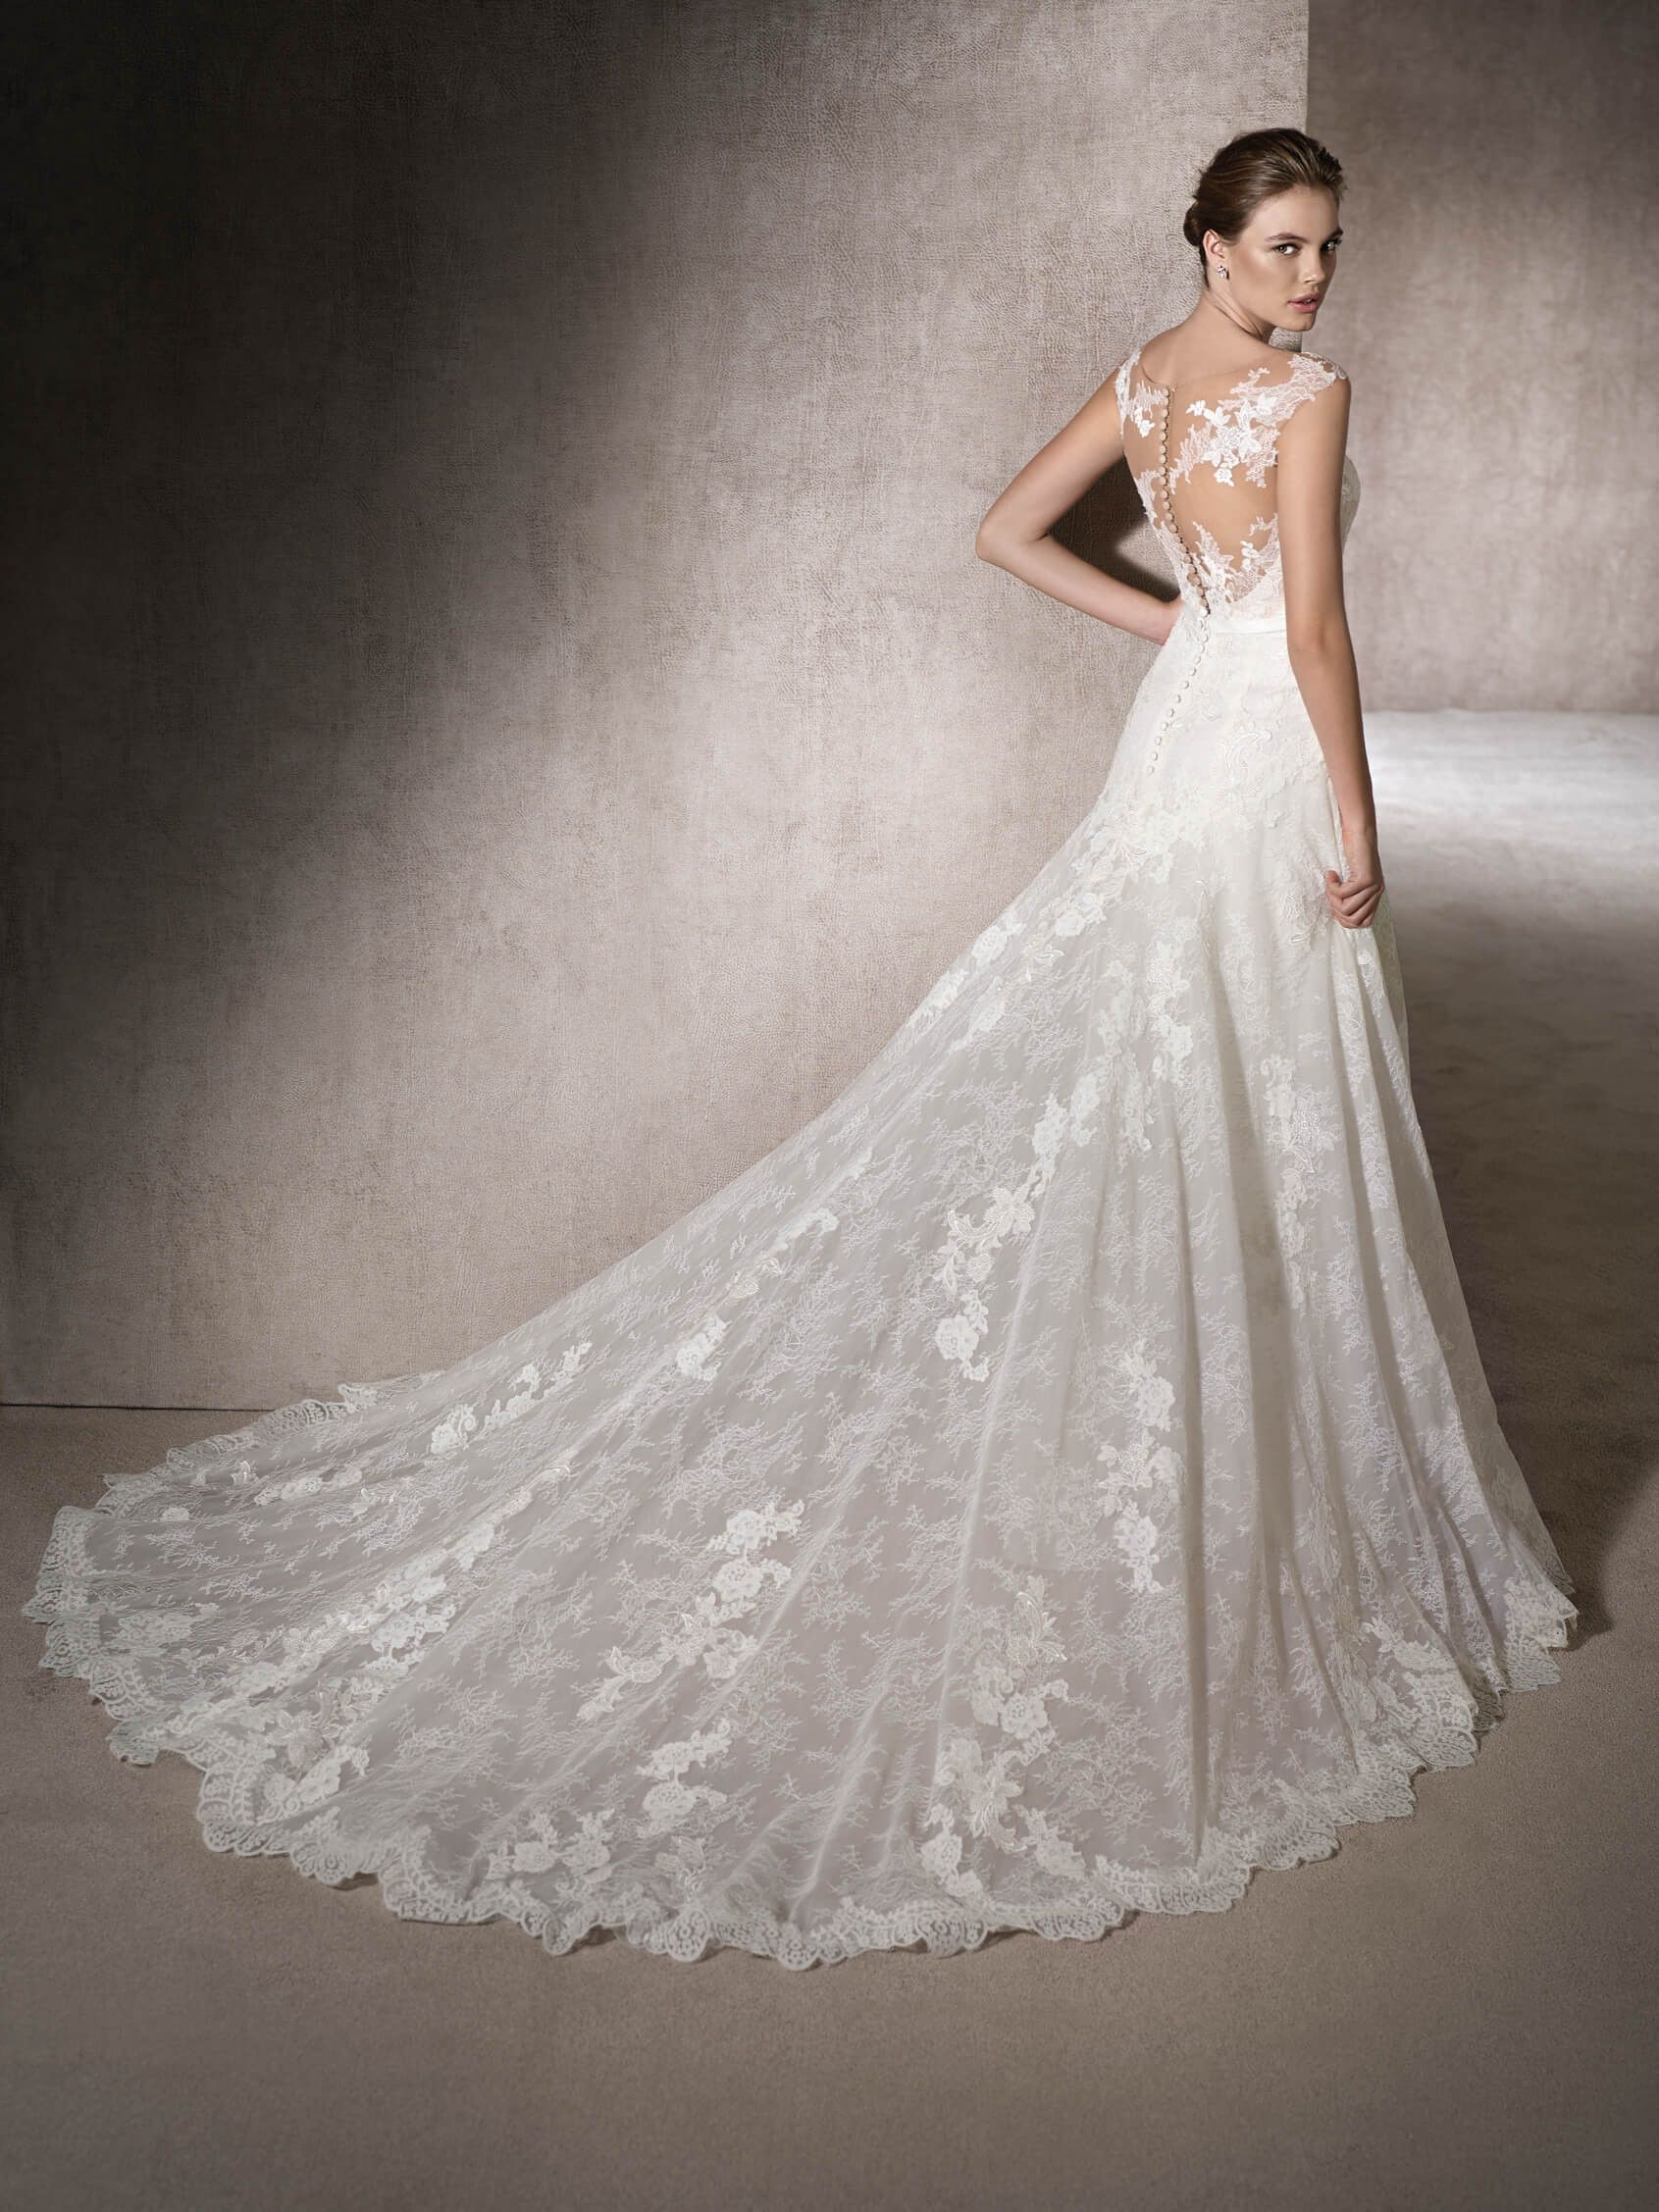 Mikonos is a stunning aline wedding dress in tulle with guipure